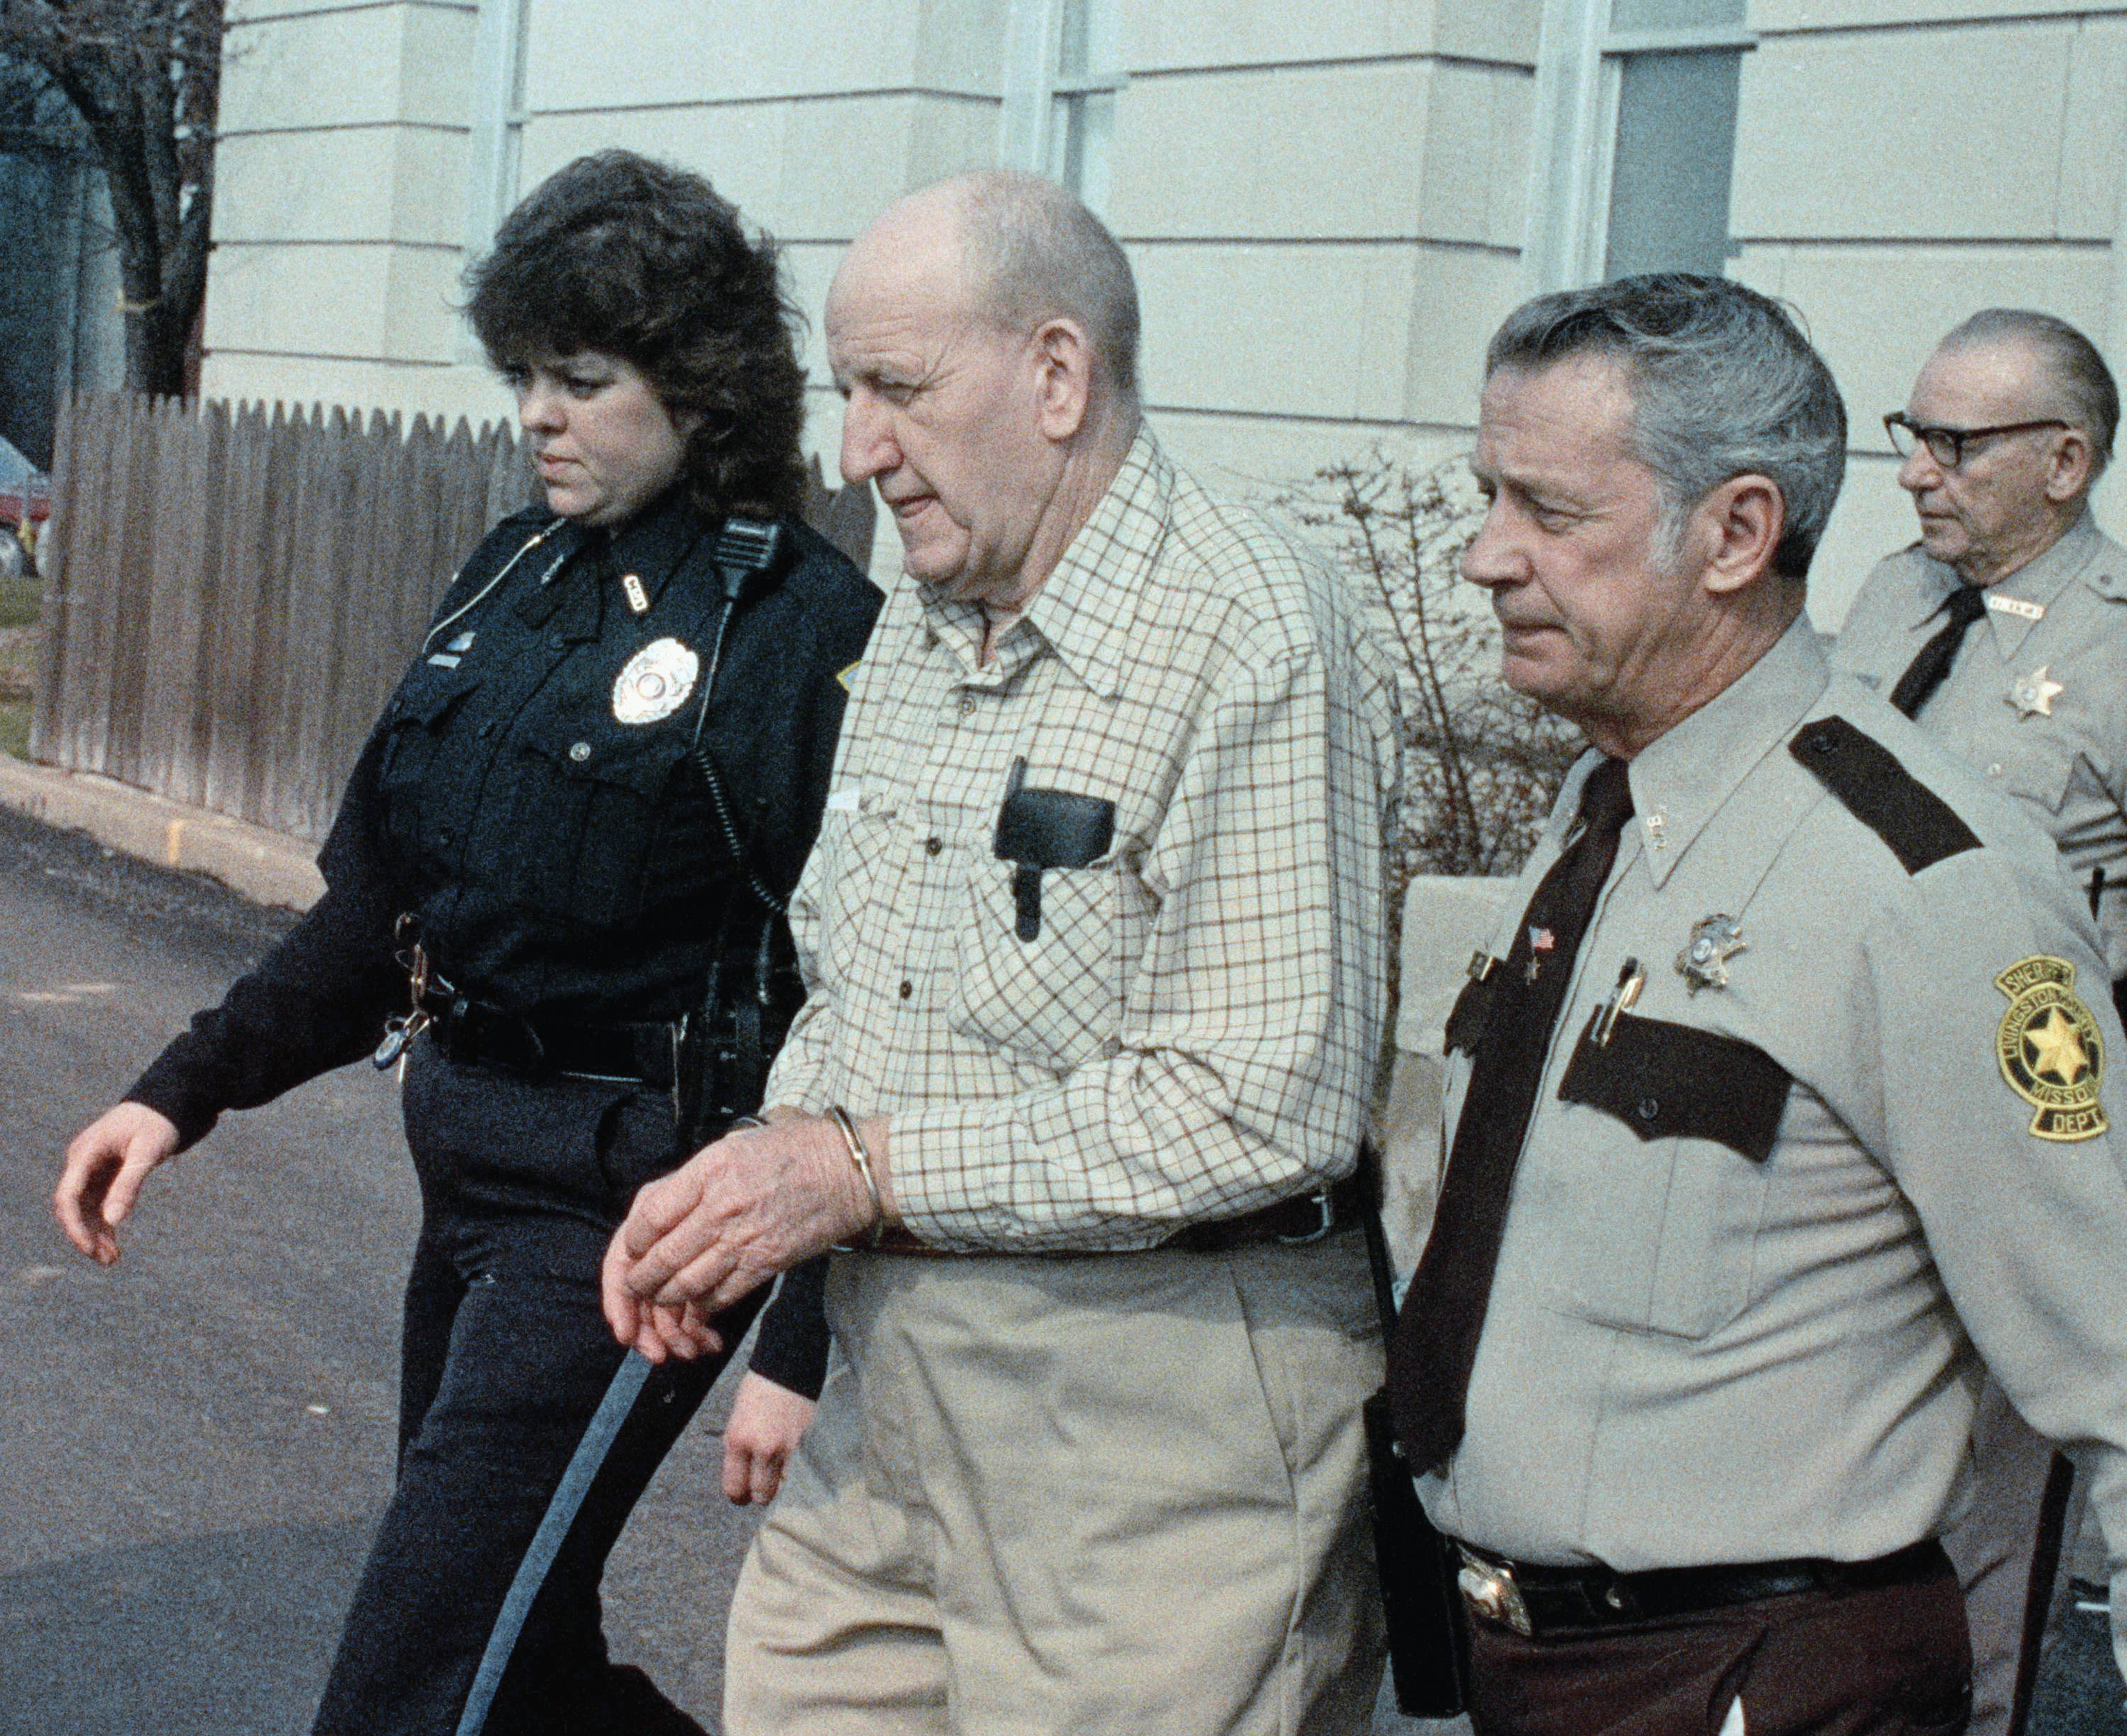 Ray Copeland being escorted to jail